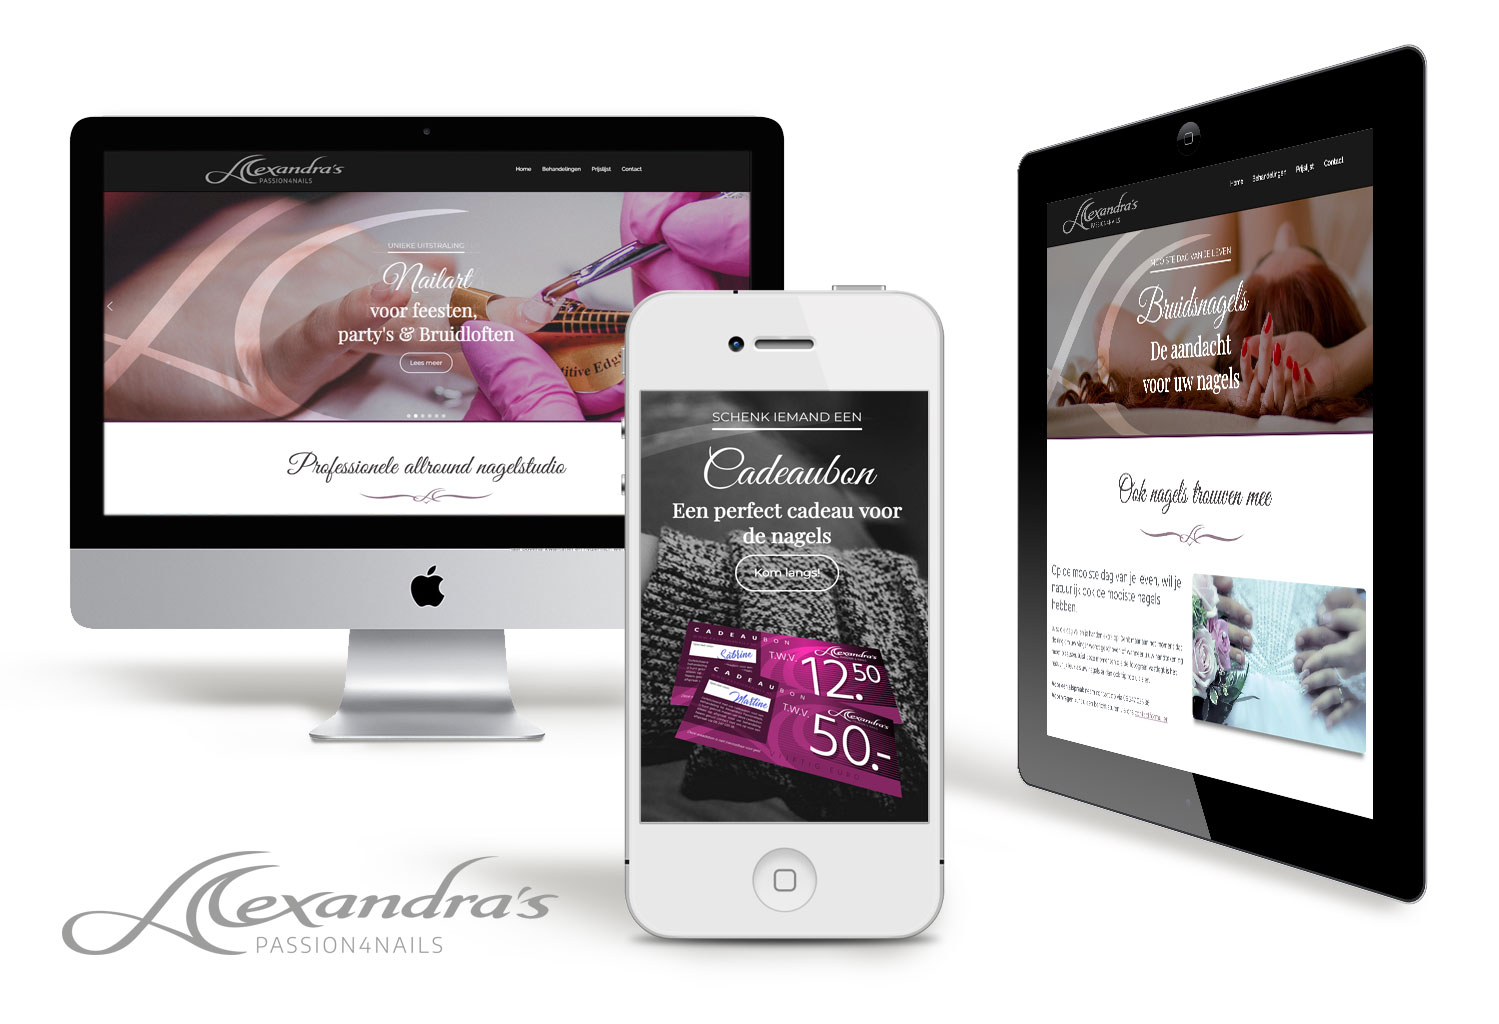 Webdesign-a-passion4nails-grimmstudio